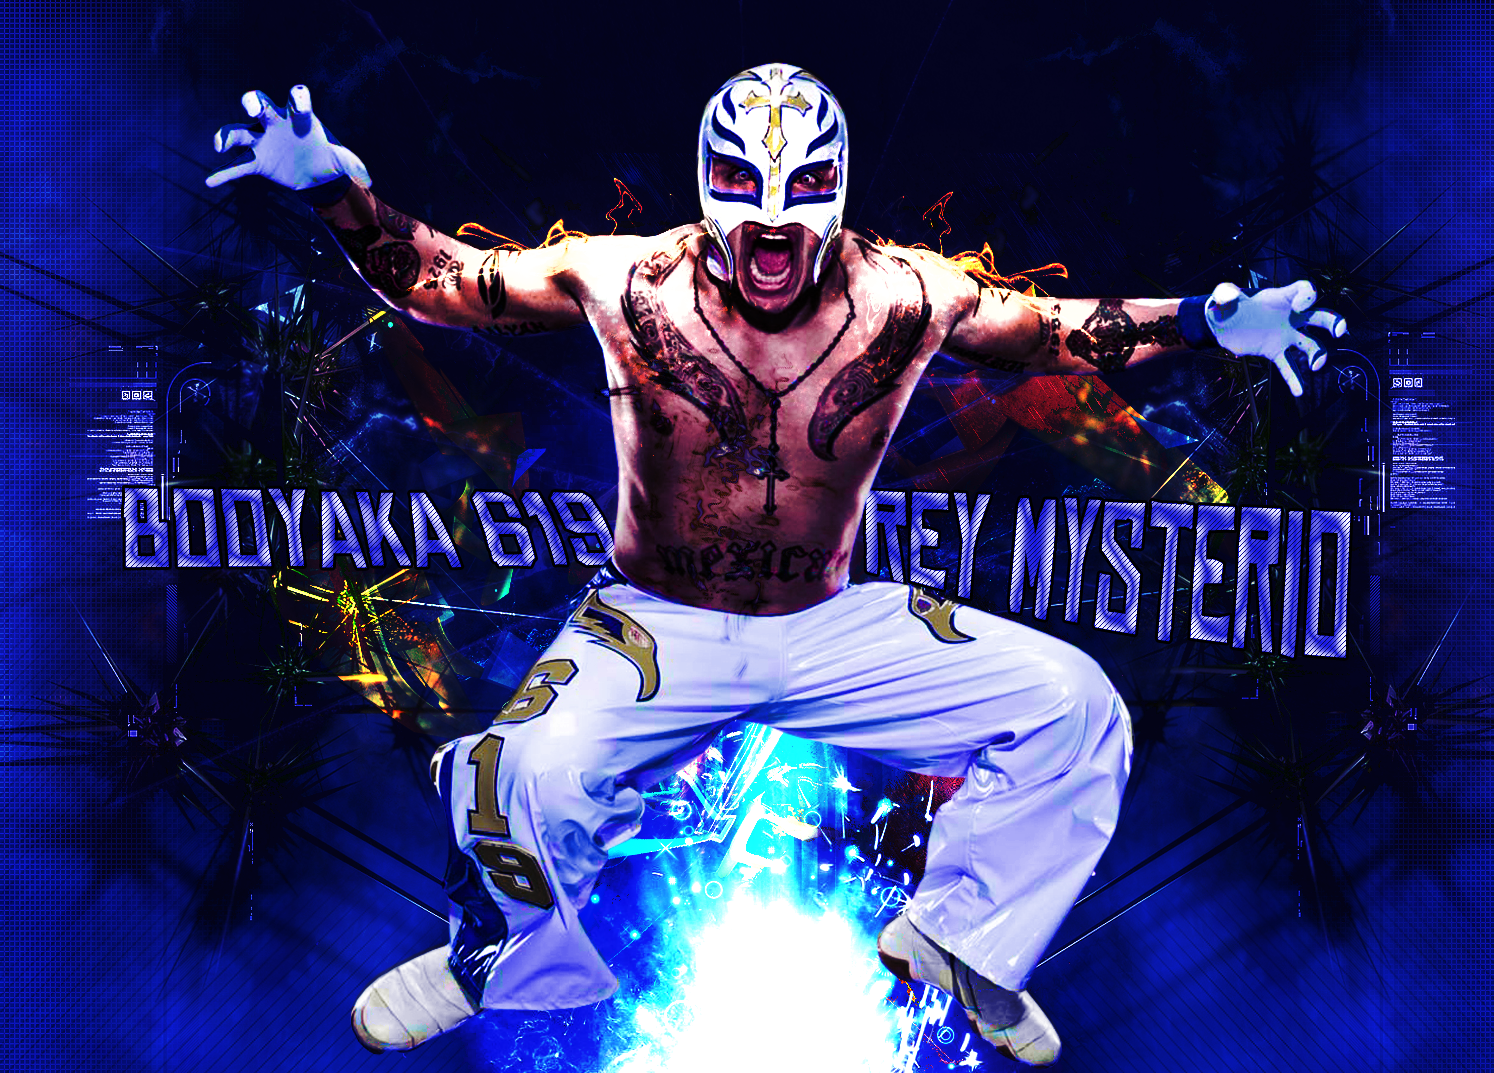 Rey Mysterio 2013 Wallpaper | Wrestling and Wrestlers